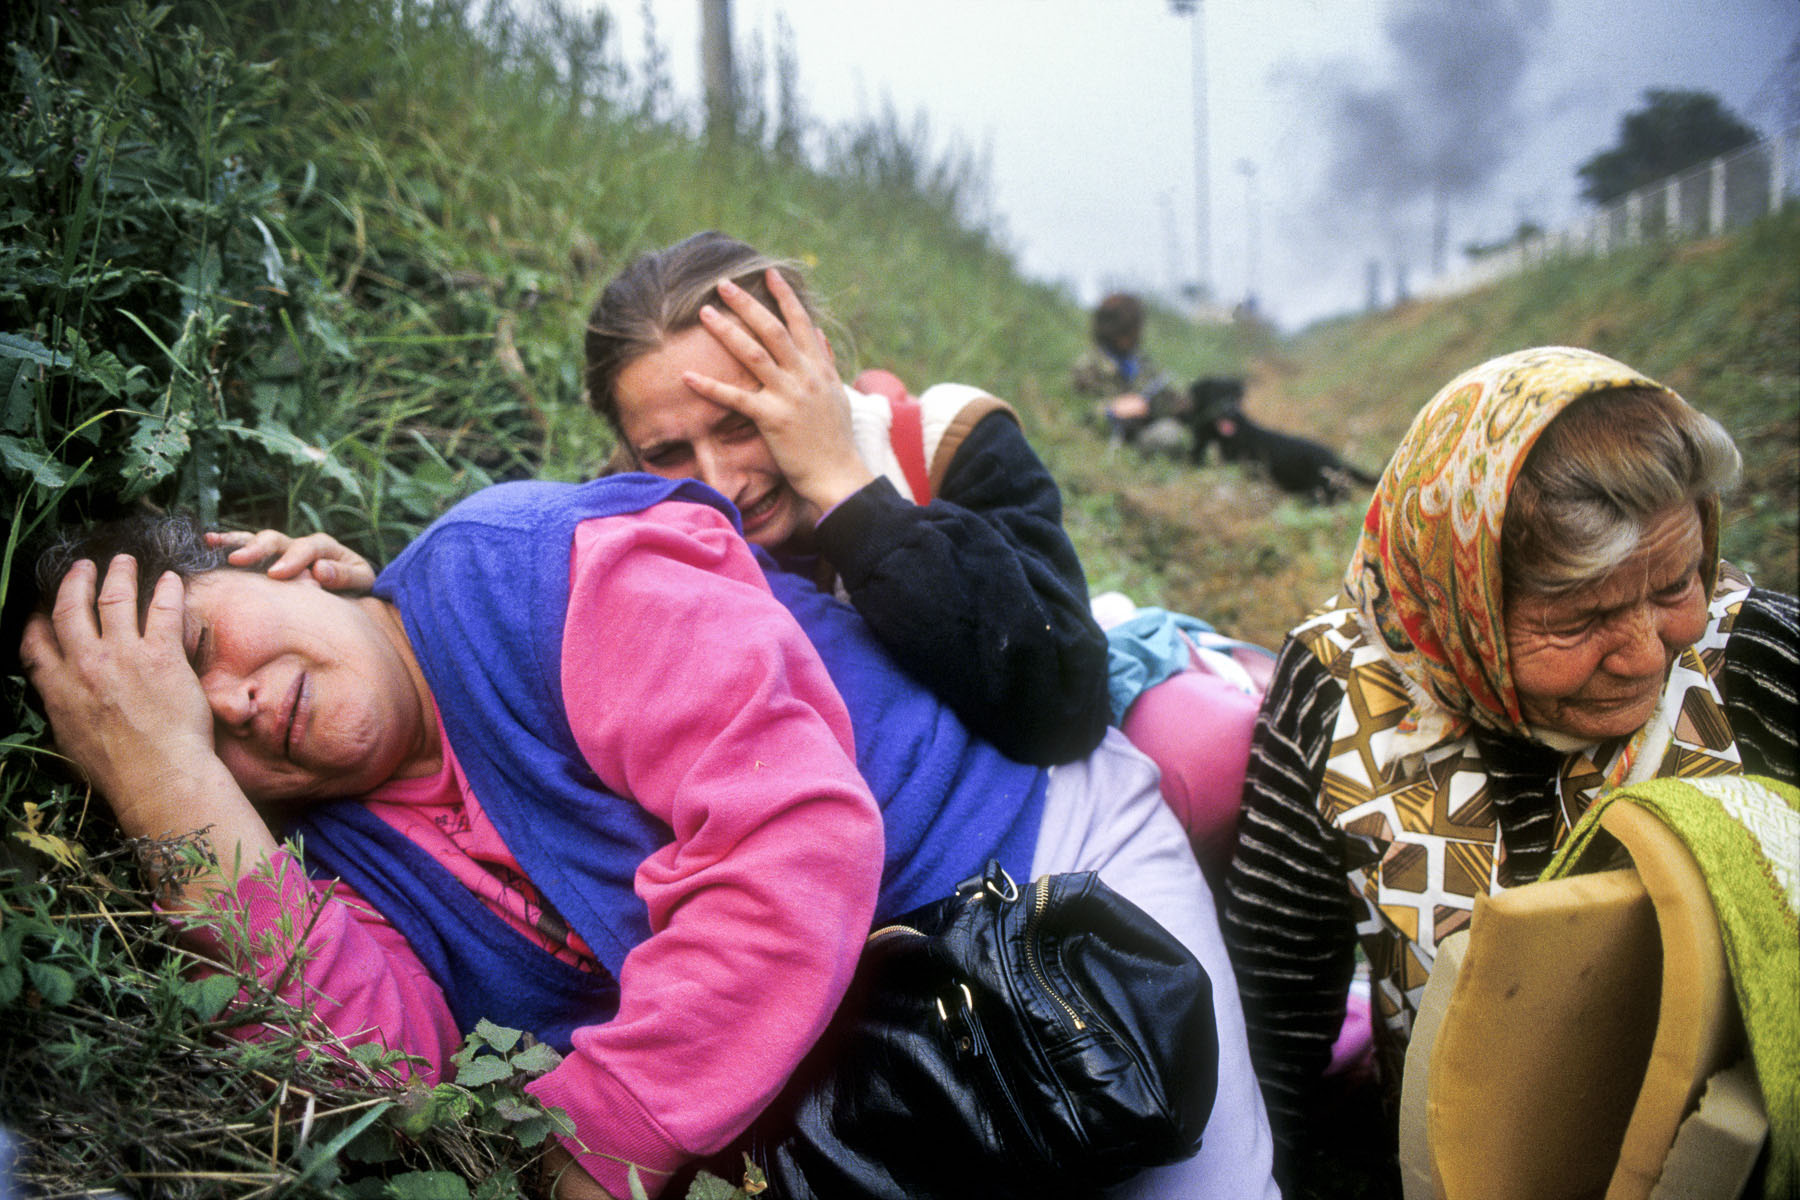 Croatian women under a bombing attack from the Yugoslav federal army in September 1991